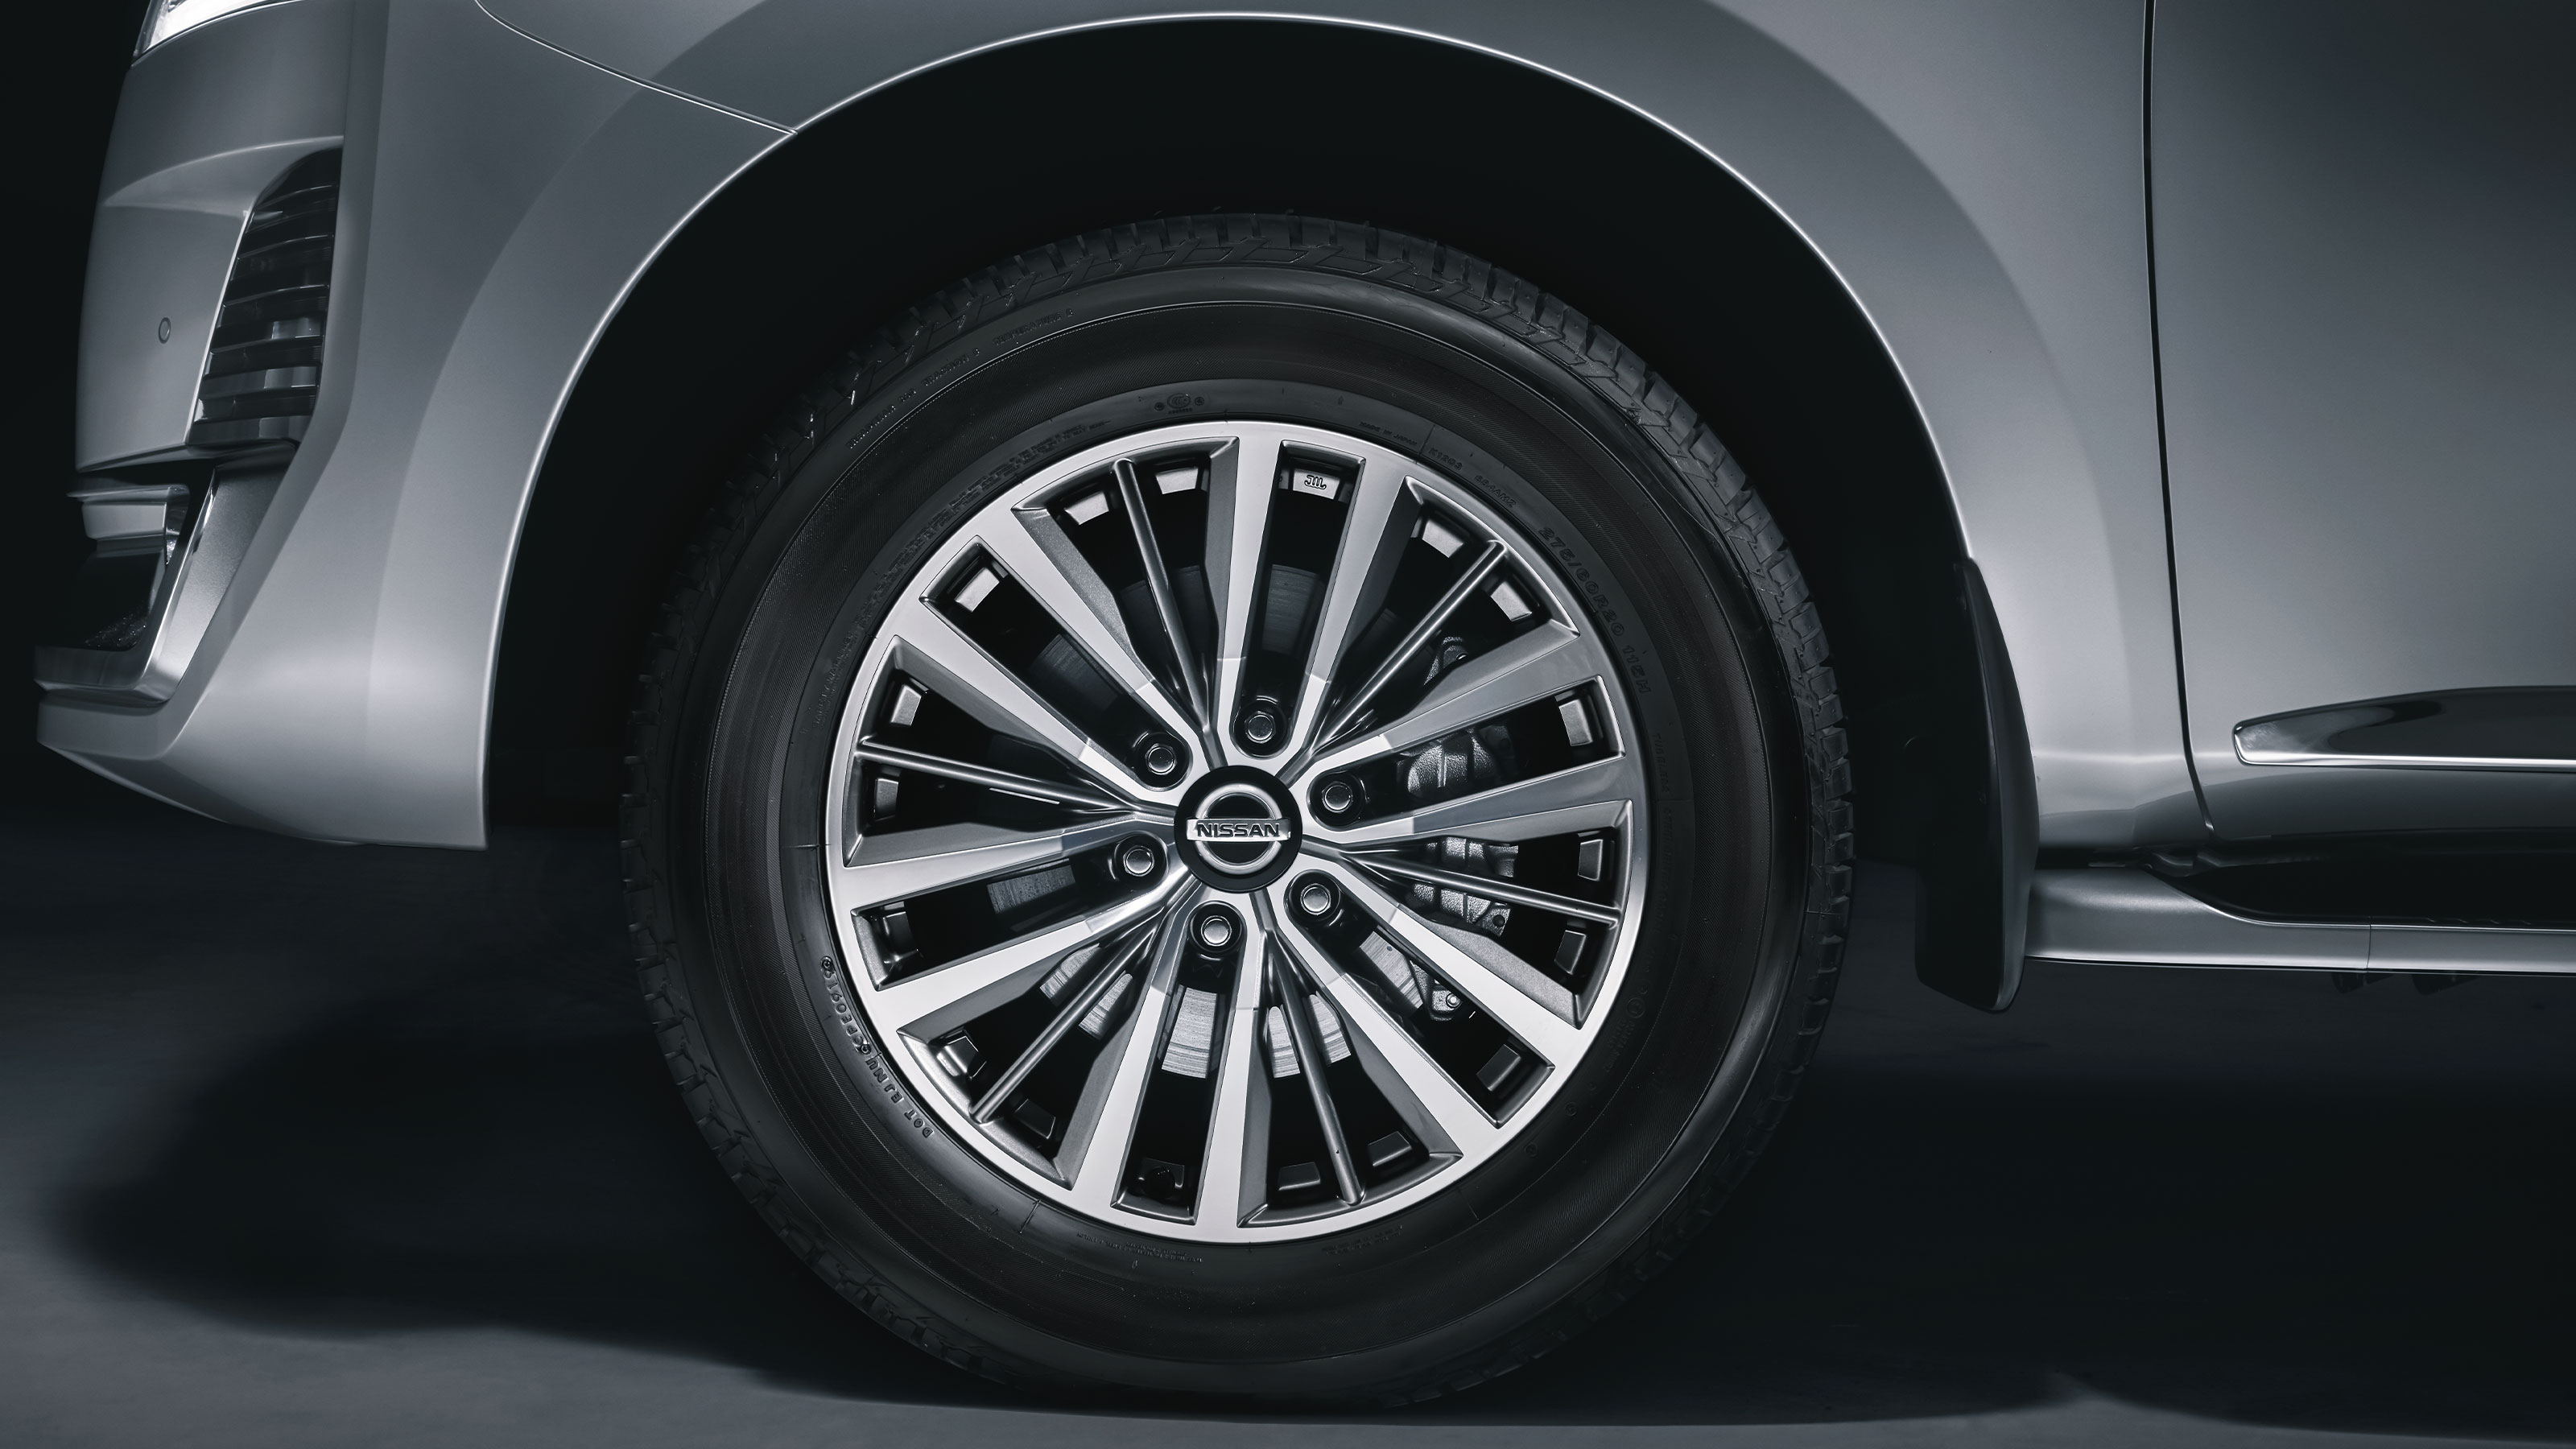 2020 NISSAN PATROL front wheel and rim